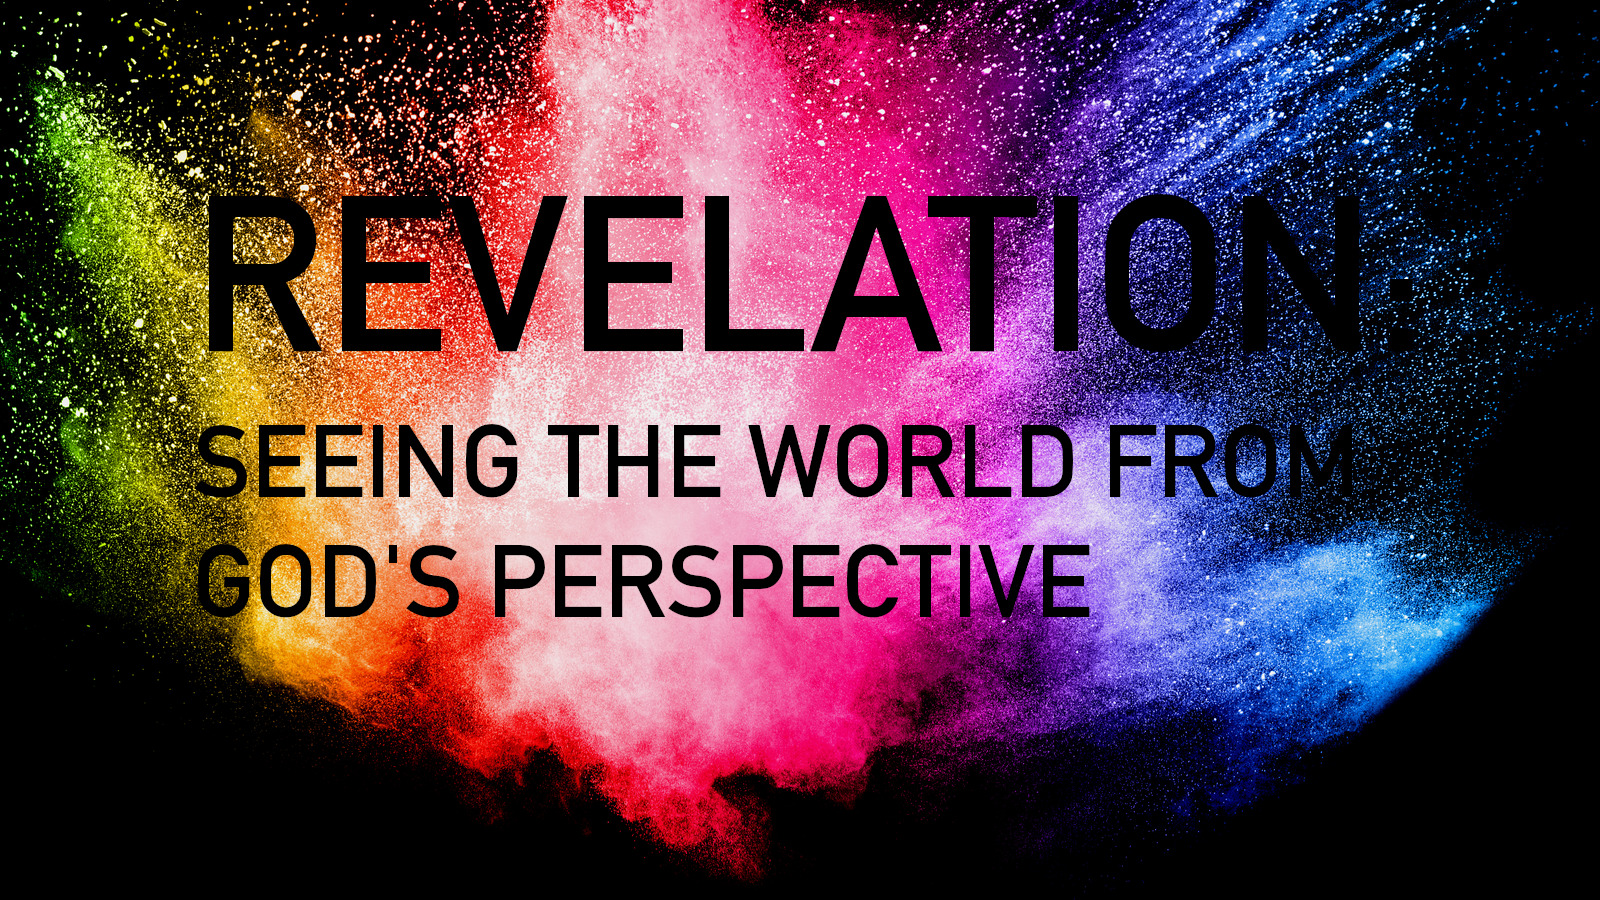 Revelation 17-18: The Prostitute and the Beast